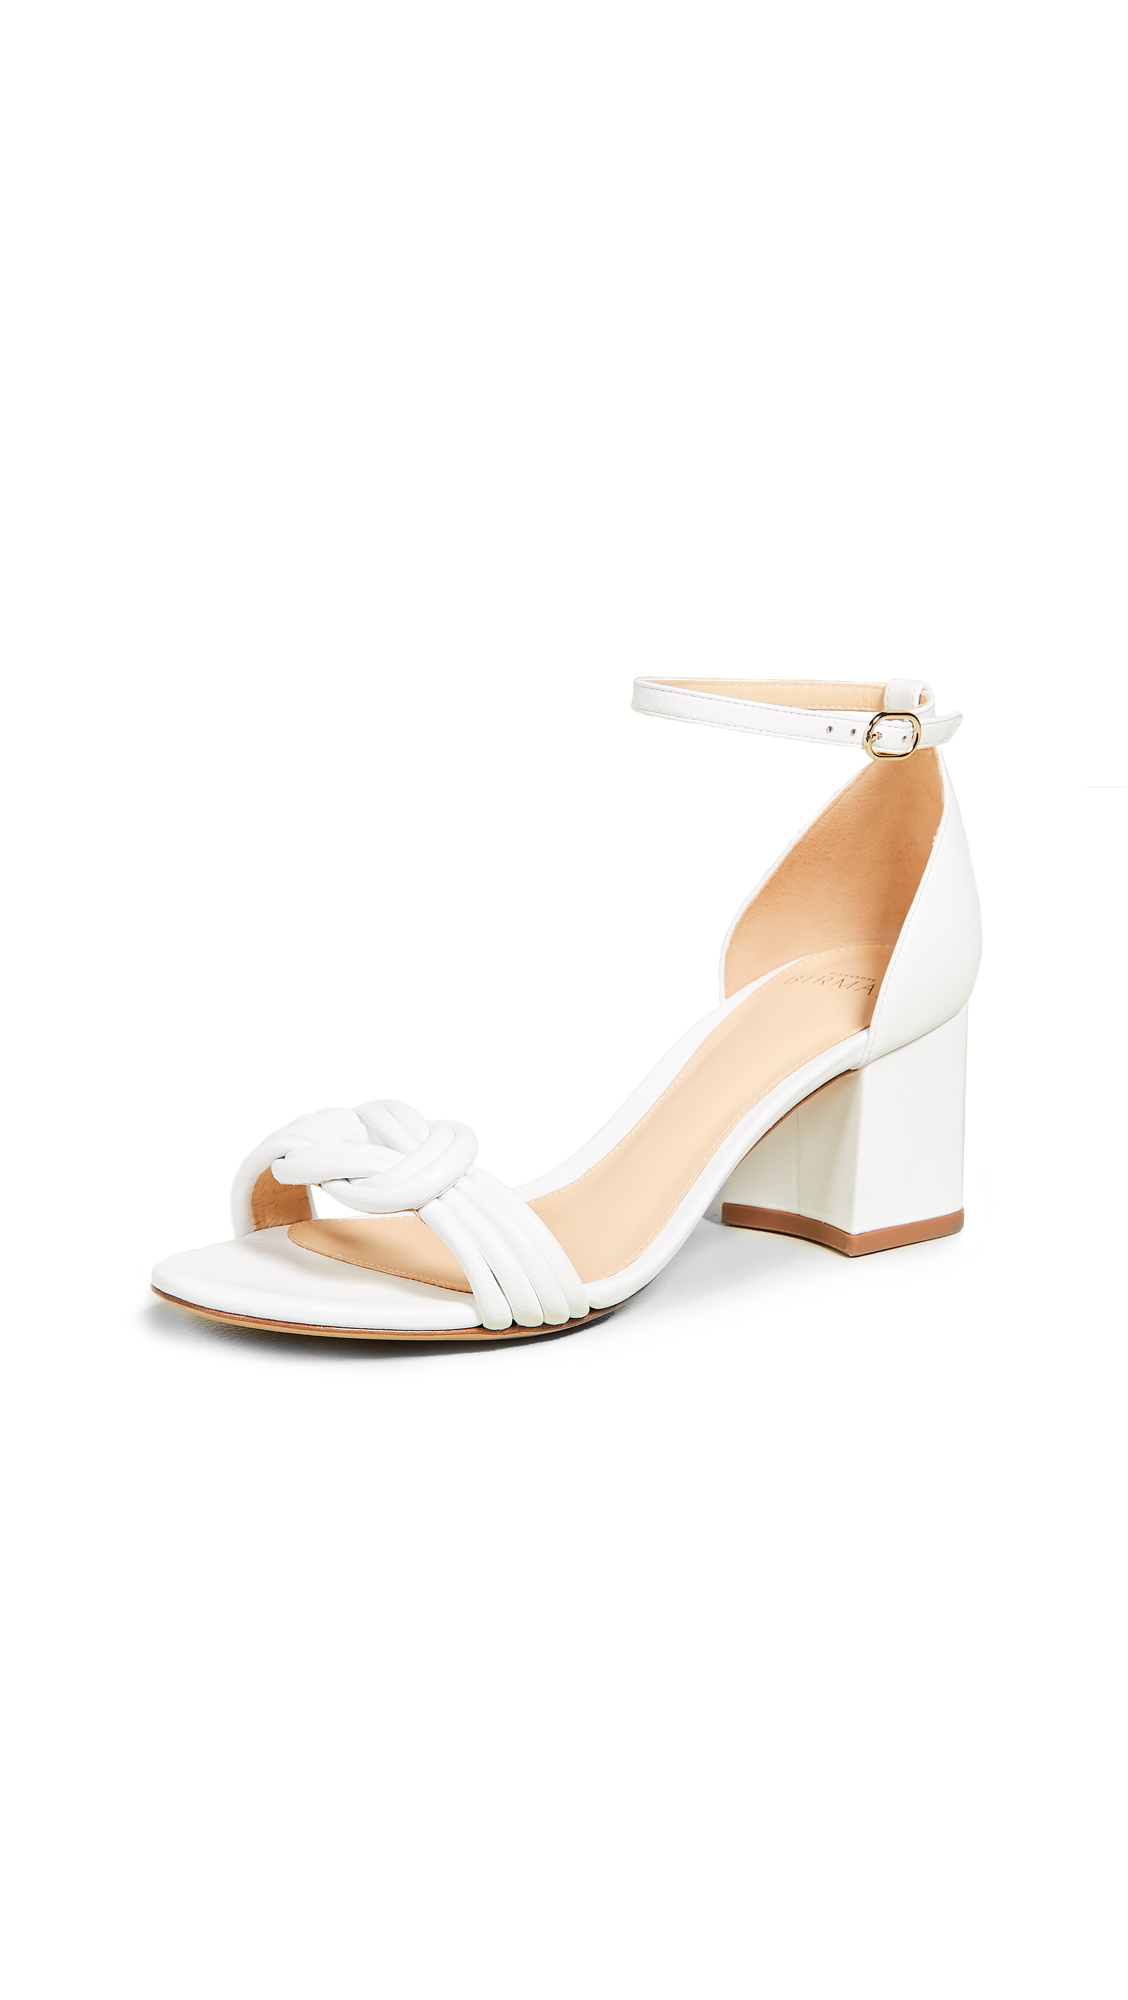 Alexandre Birman Malica Sandals 60mm - White